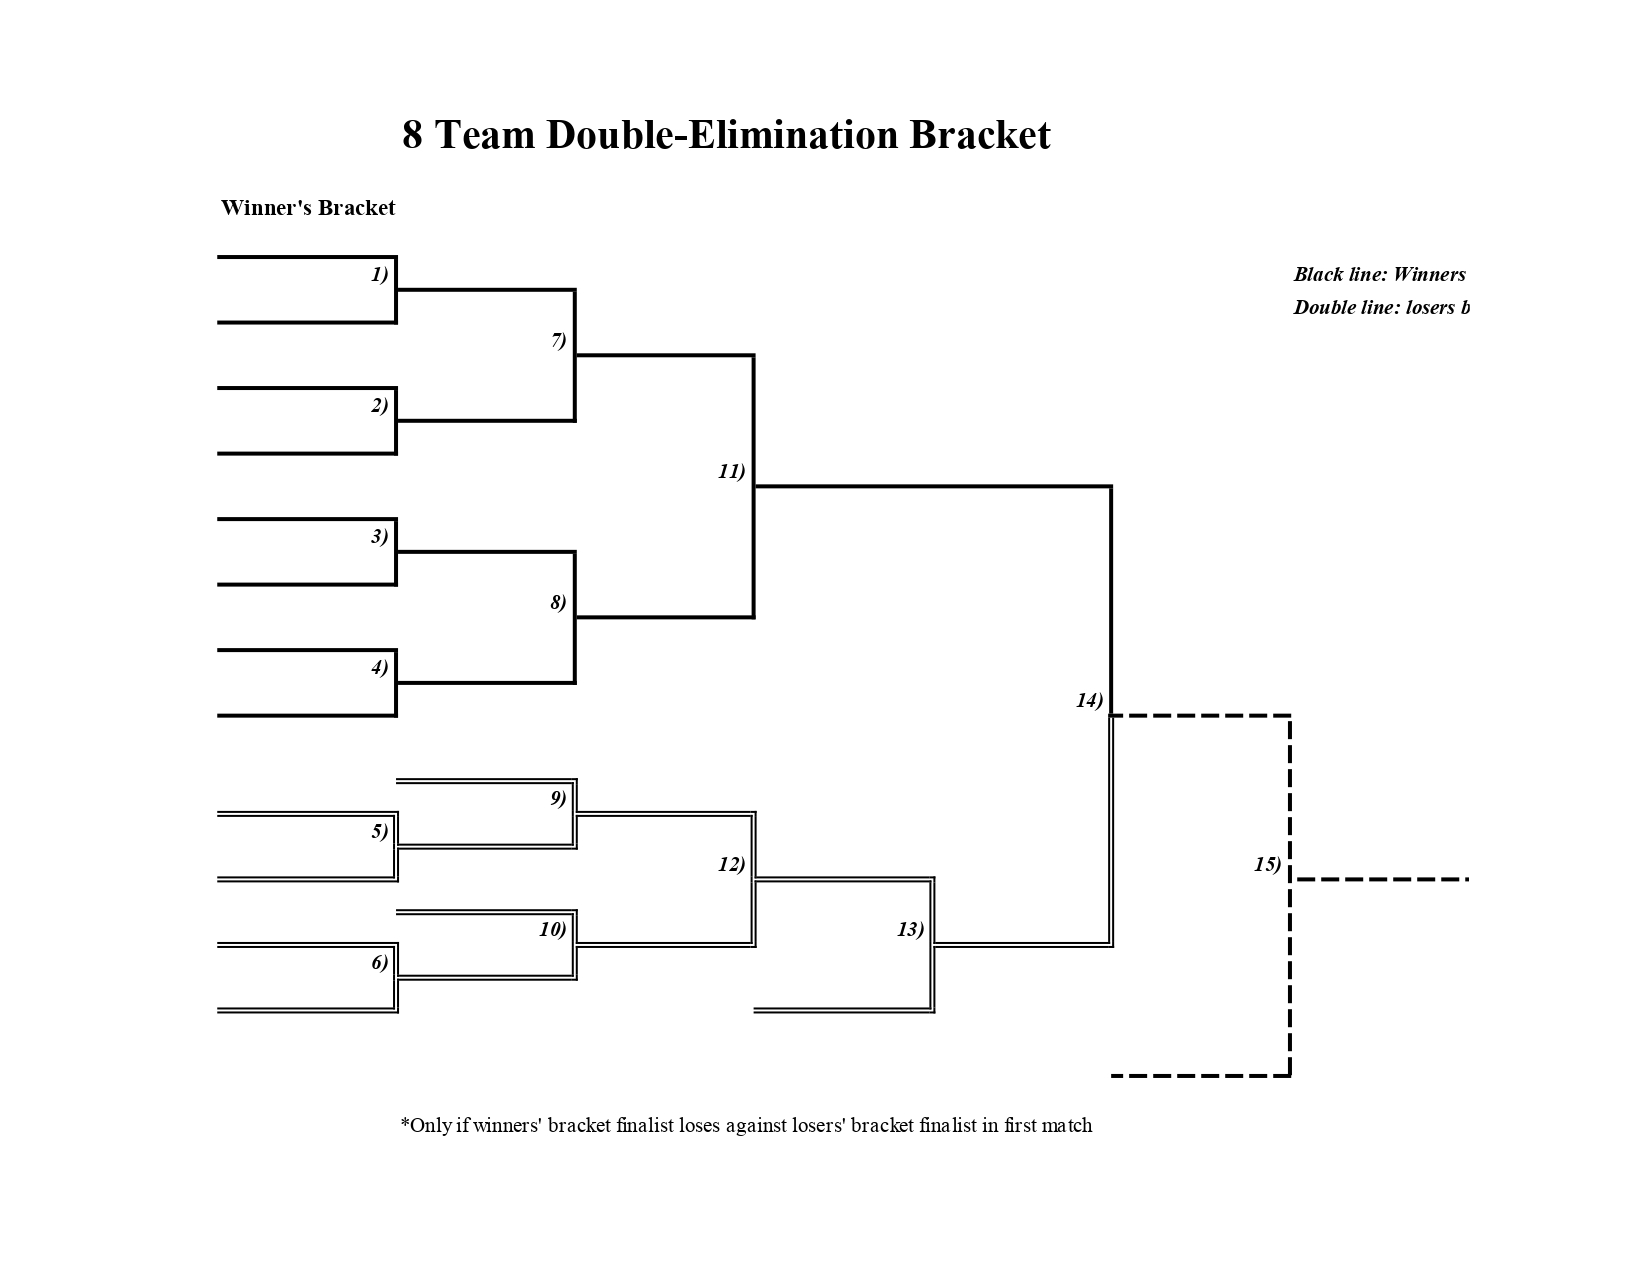 8-team single-elimination bracket